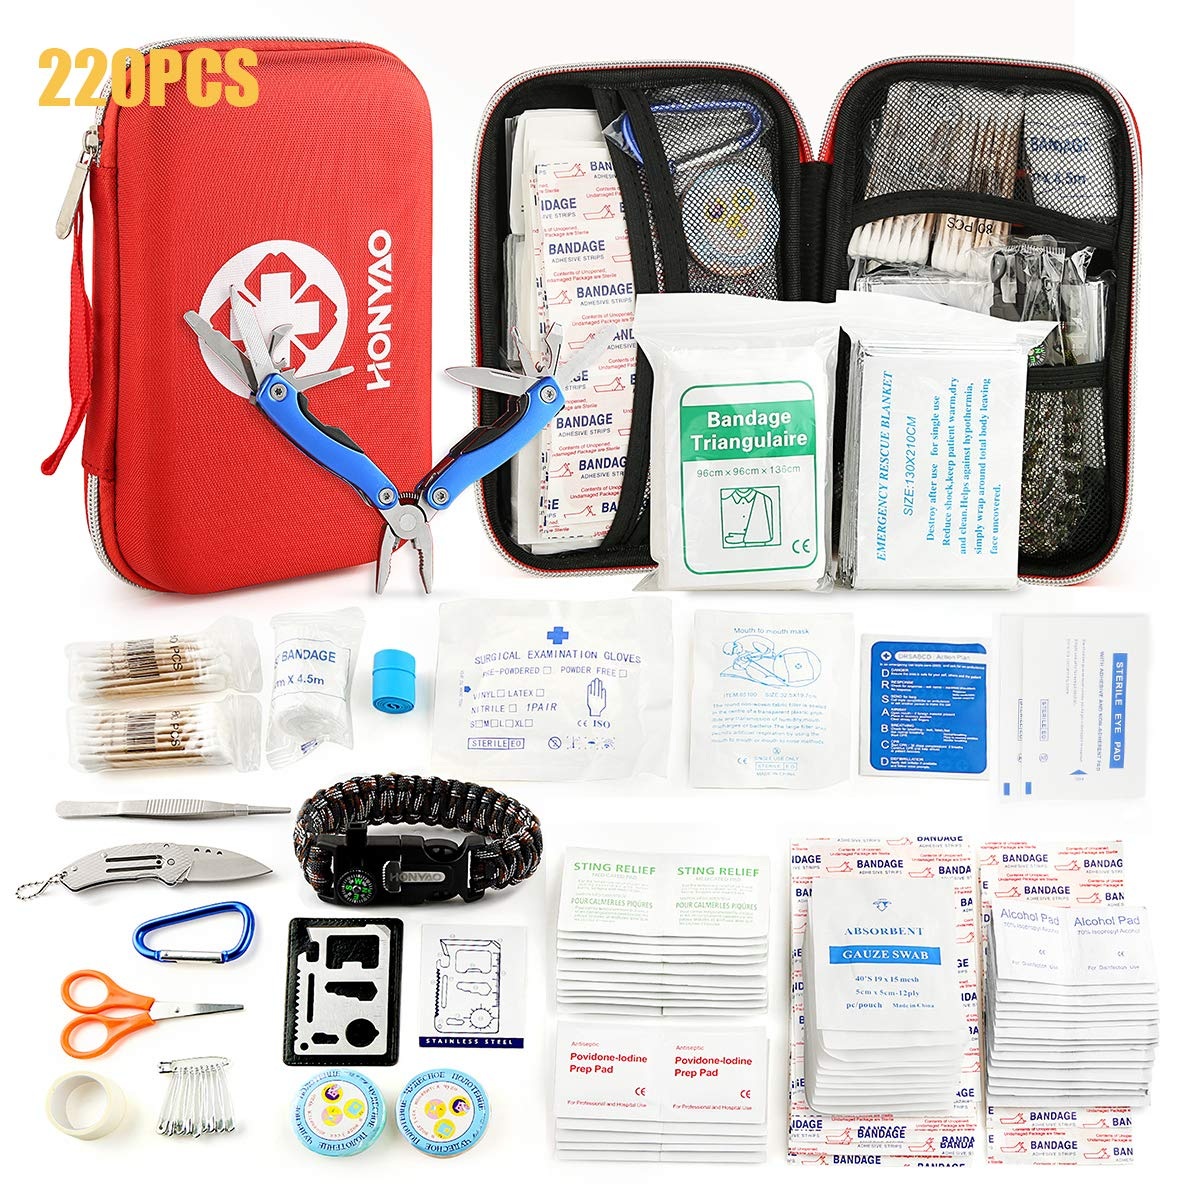 HONYAO First Aid Kit - Survival Kit Upgraded w/ Waterproof Hard Case Multitool Plier Thermal Blanket Bandages and more for Travel Hiking Camping Fishing Hunting Boating Outdoor Adventure